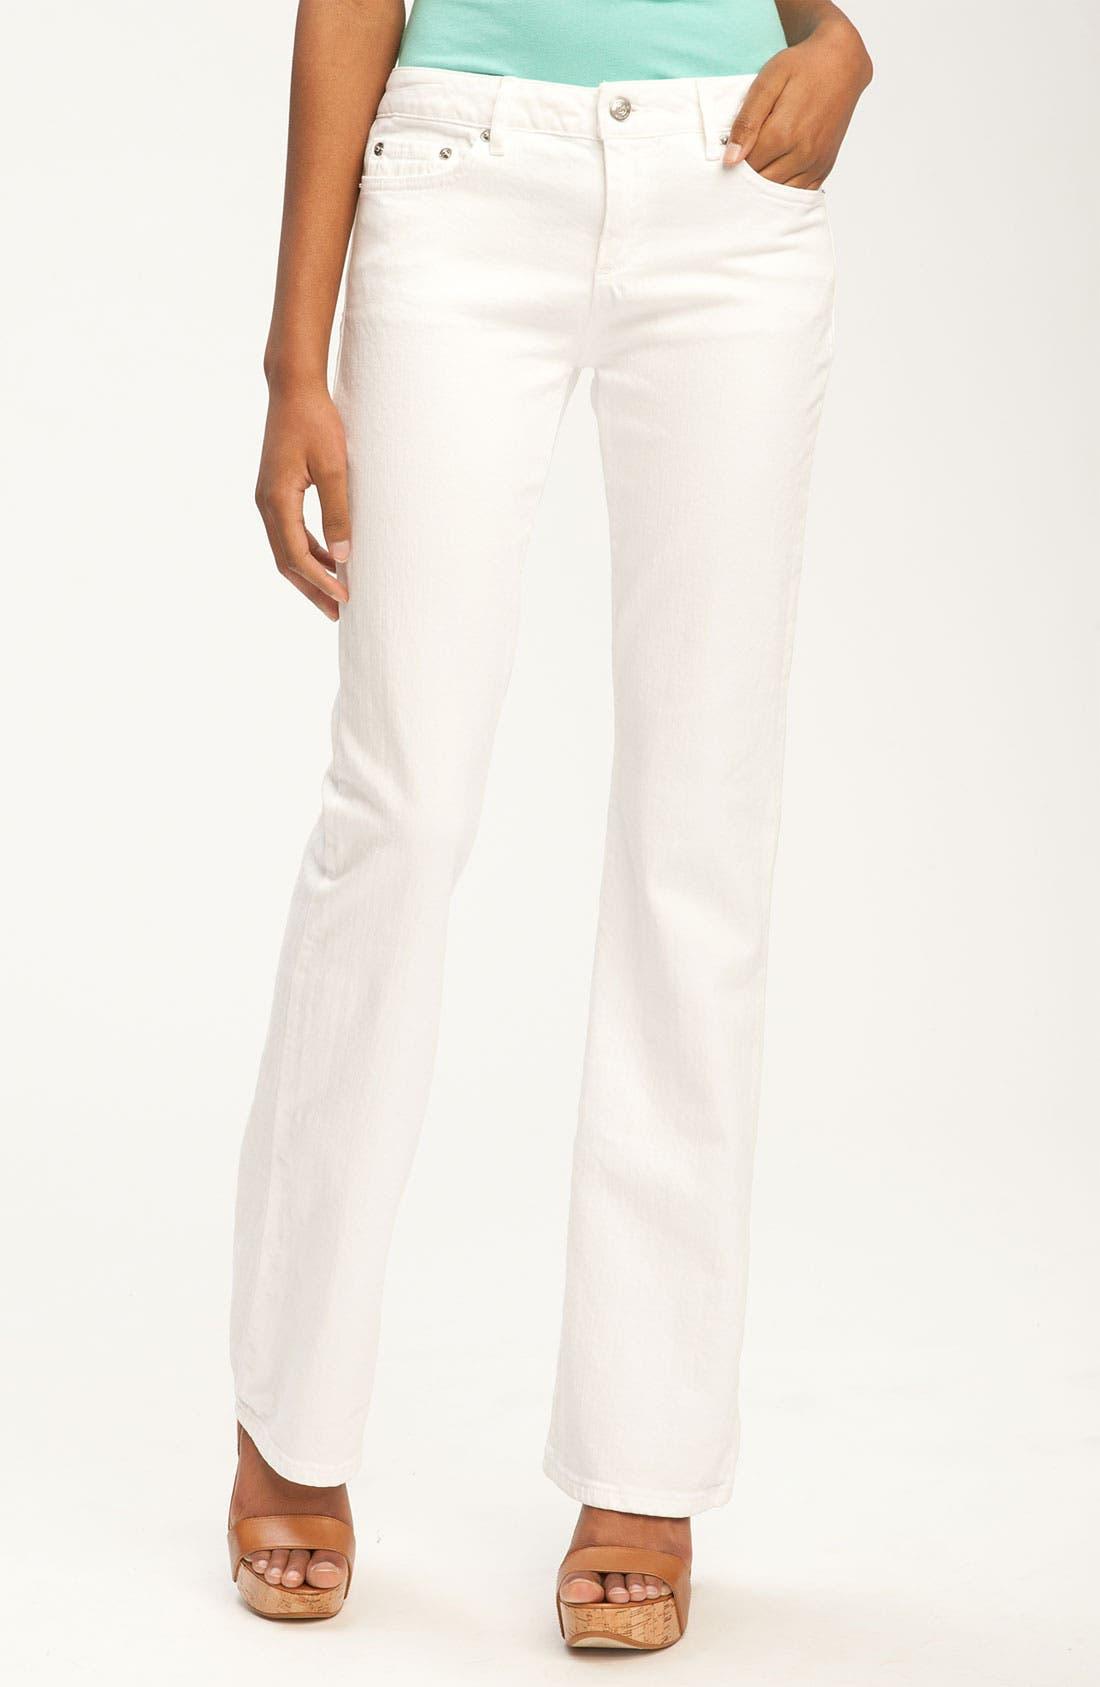 Alternate Image 1 Selected - MICHAEL Michael Kors Bootcut Jeans (Petite)